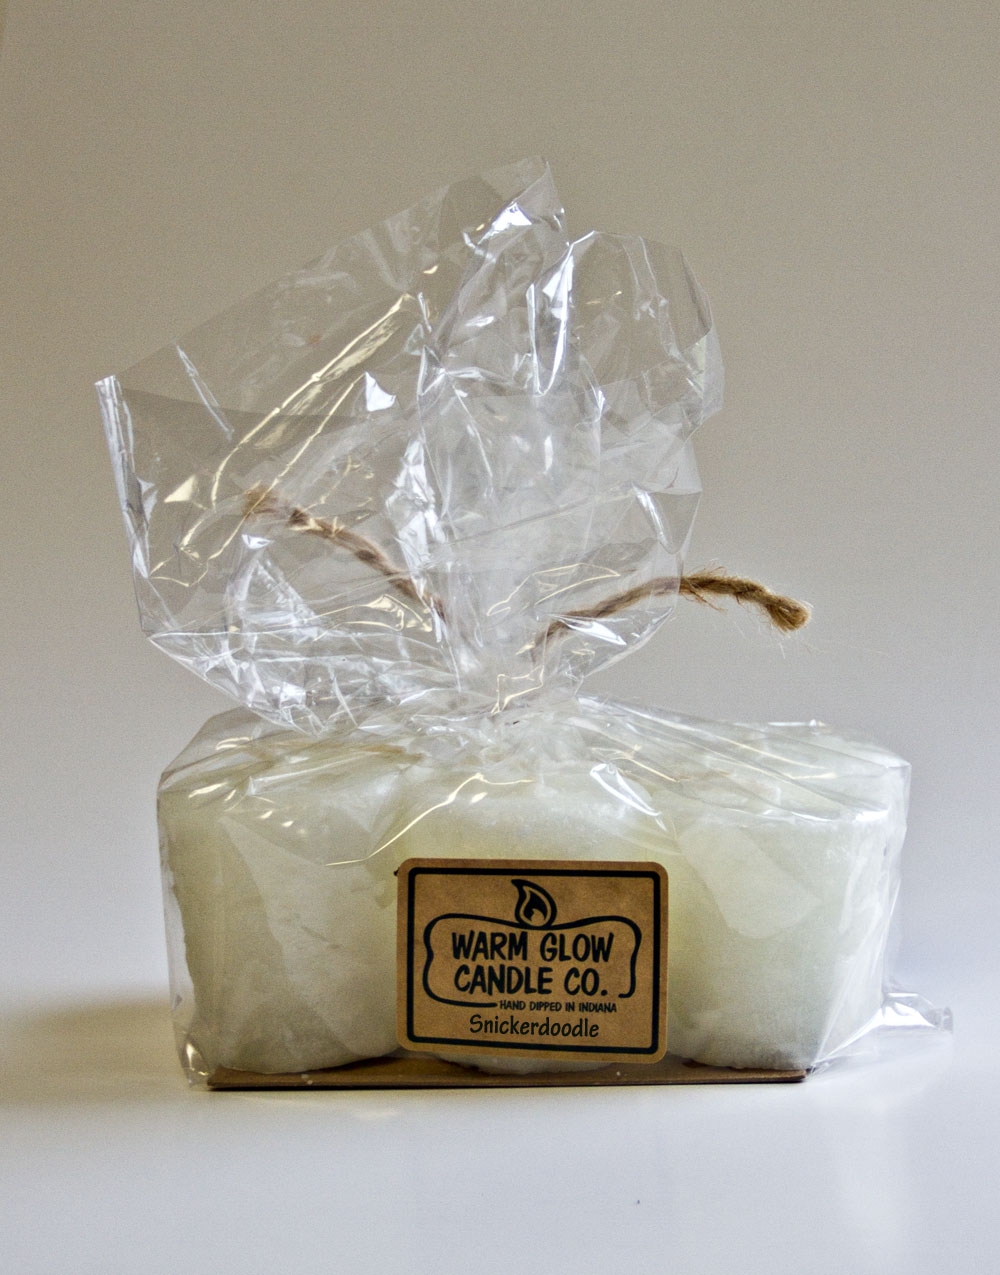 Snickerdoodle 6 Pack Votive Candles